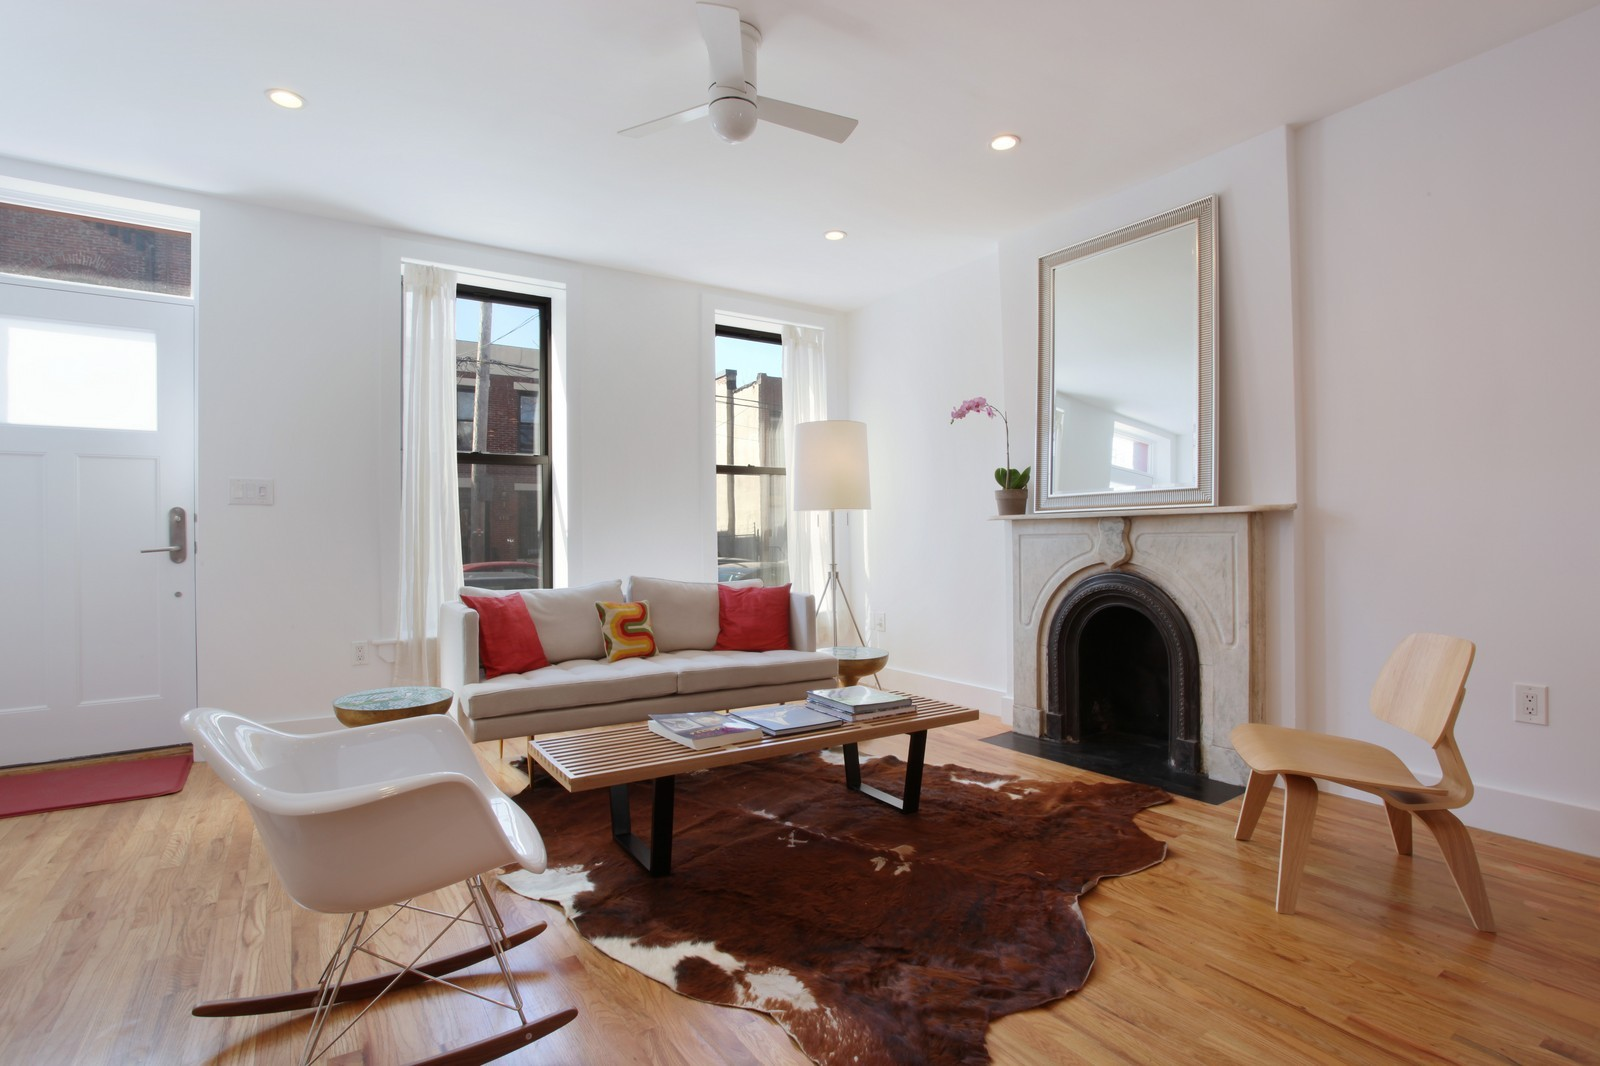 Real Estate Photography - 116 Pioneer Street, Brooklyn, NY, 11231 - Living Room